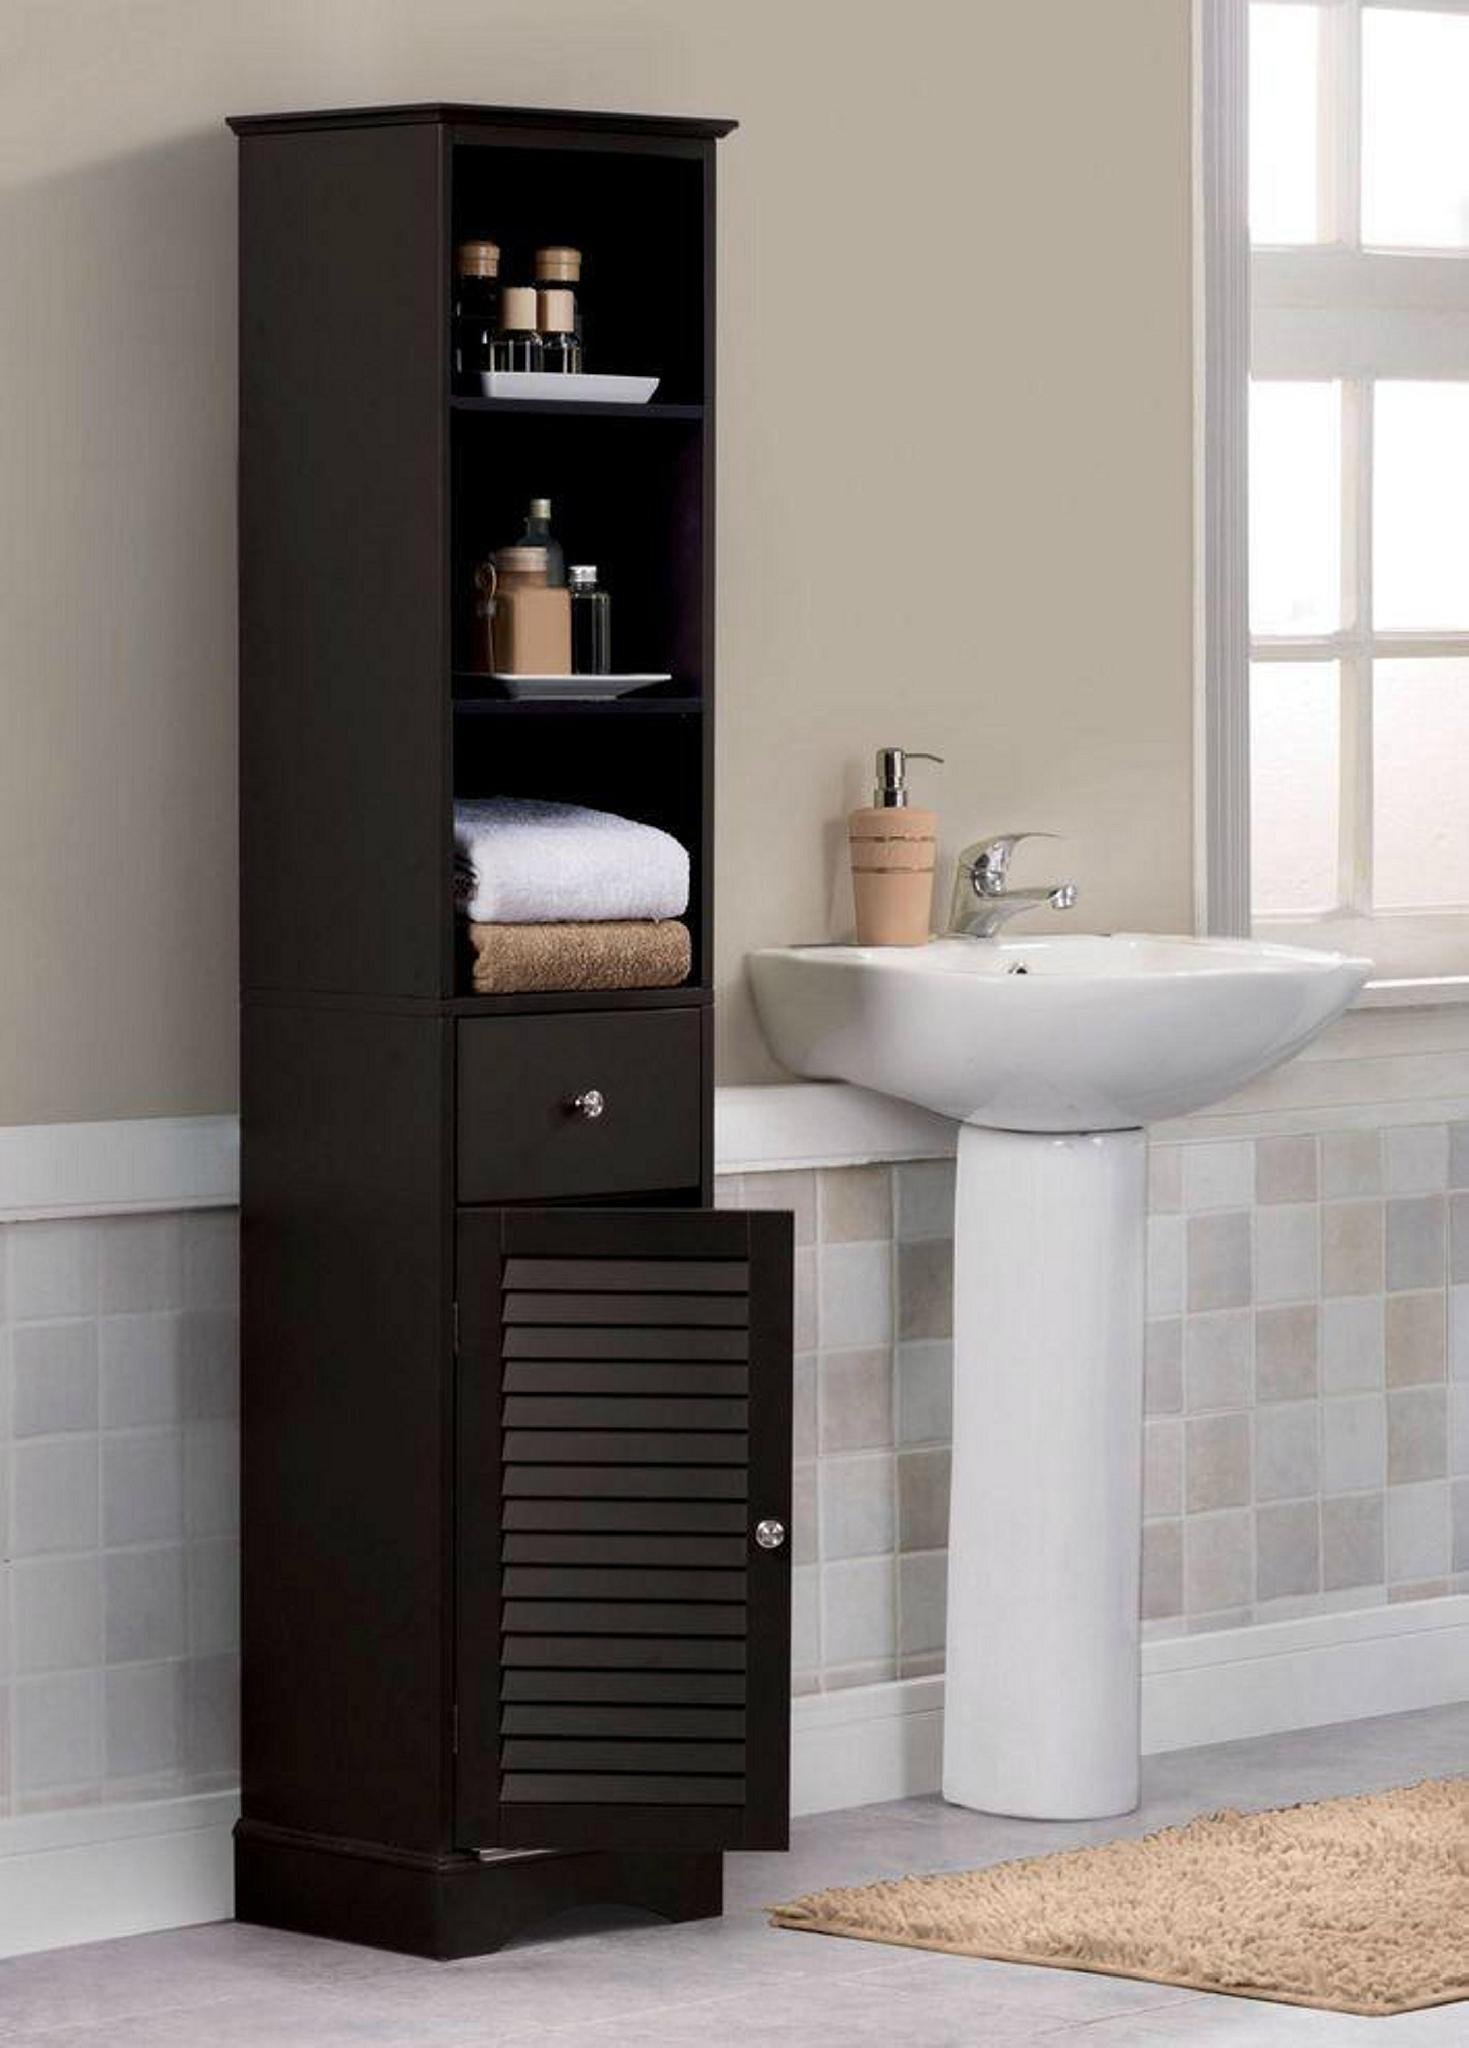 Blind Door Bathroom Tall Cabinet Amp Bathroom Shelves Over